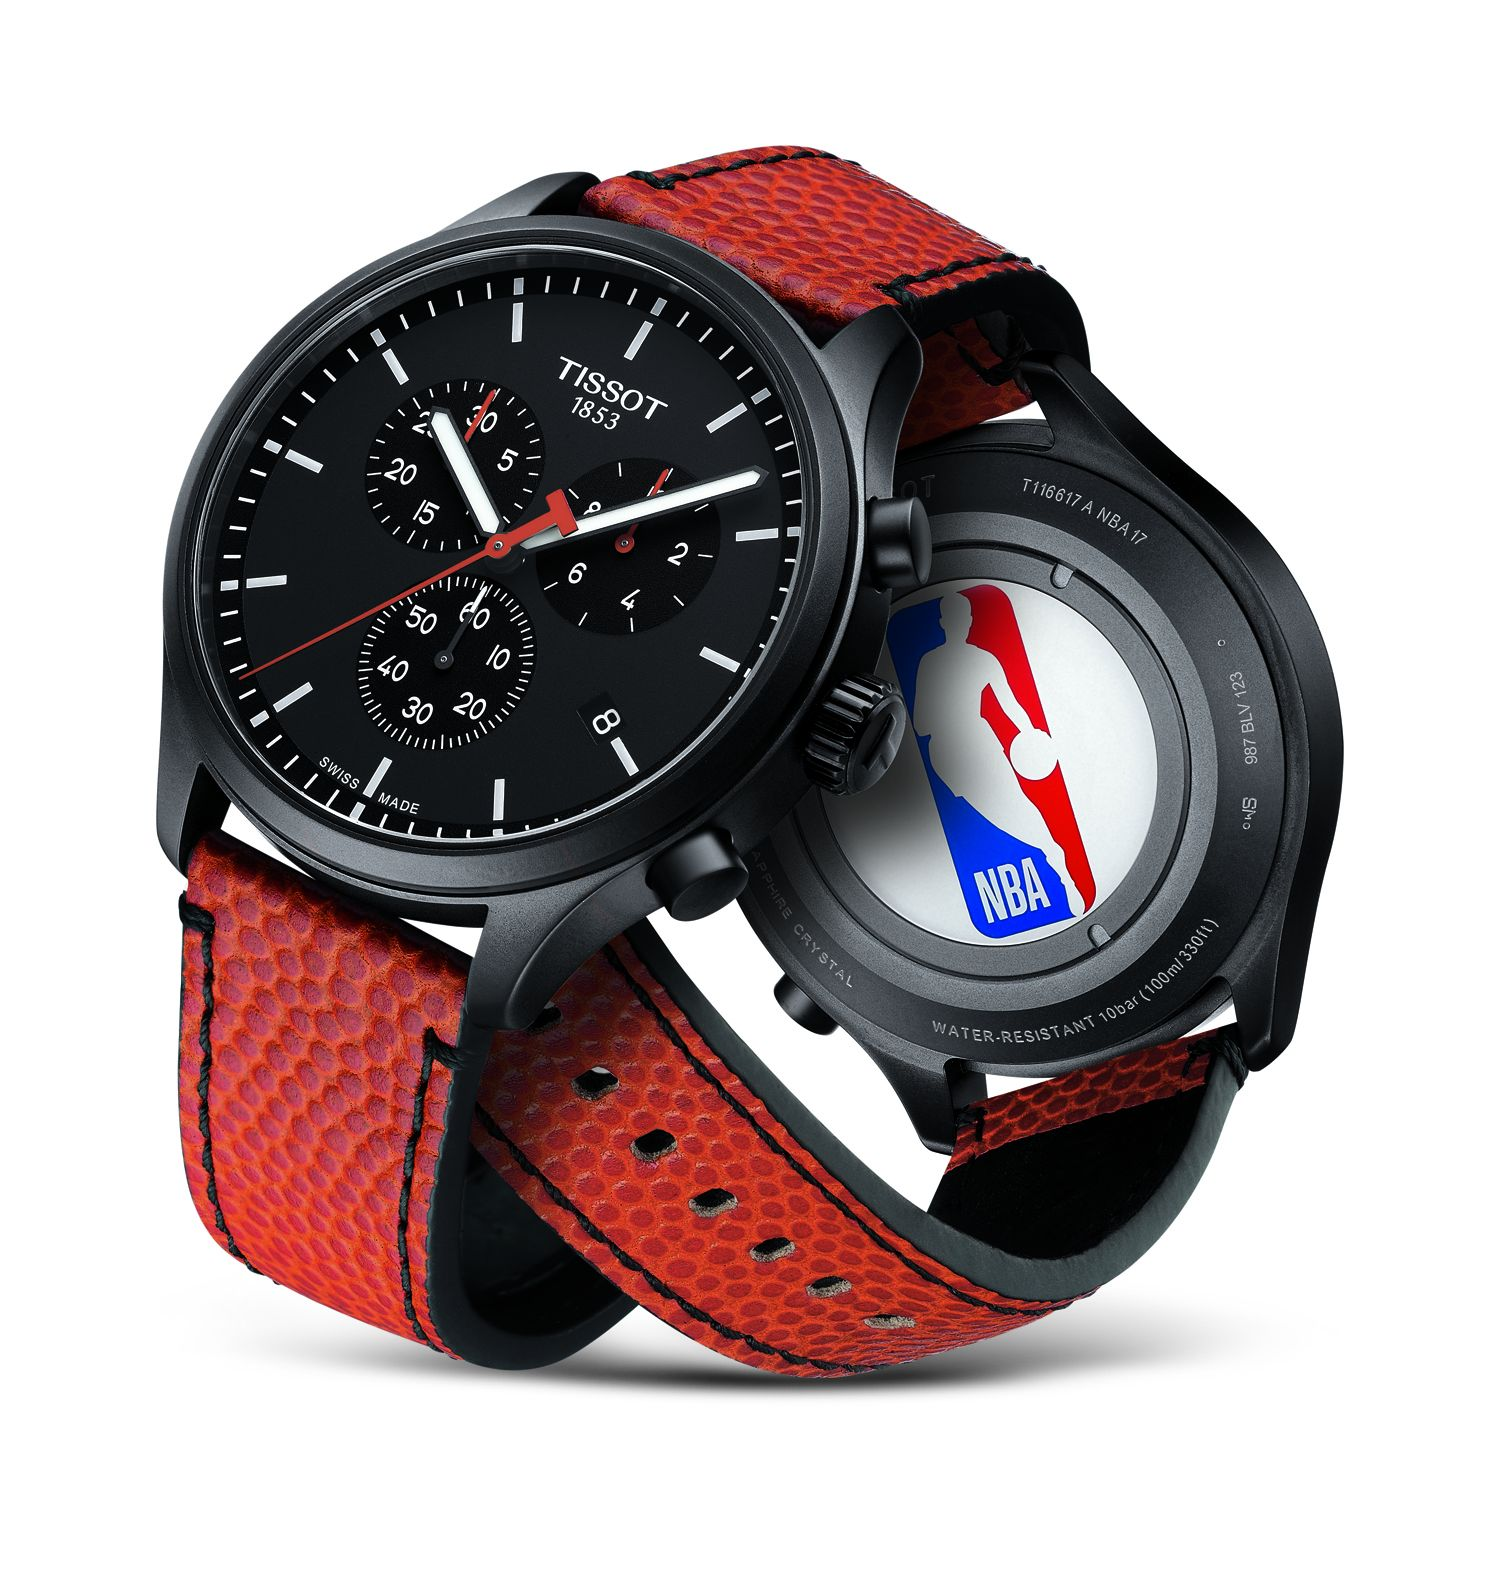 Tissot Releases An NBA Collector's Watch For Basketball Fans